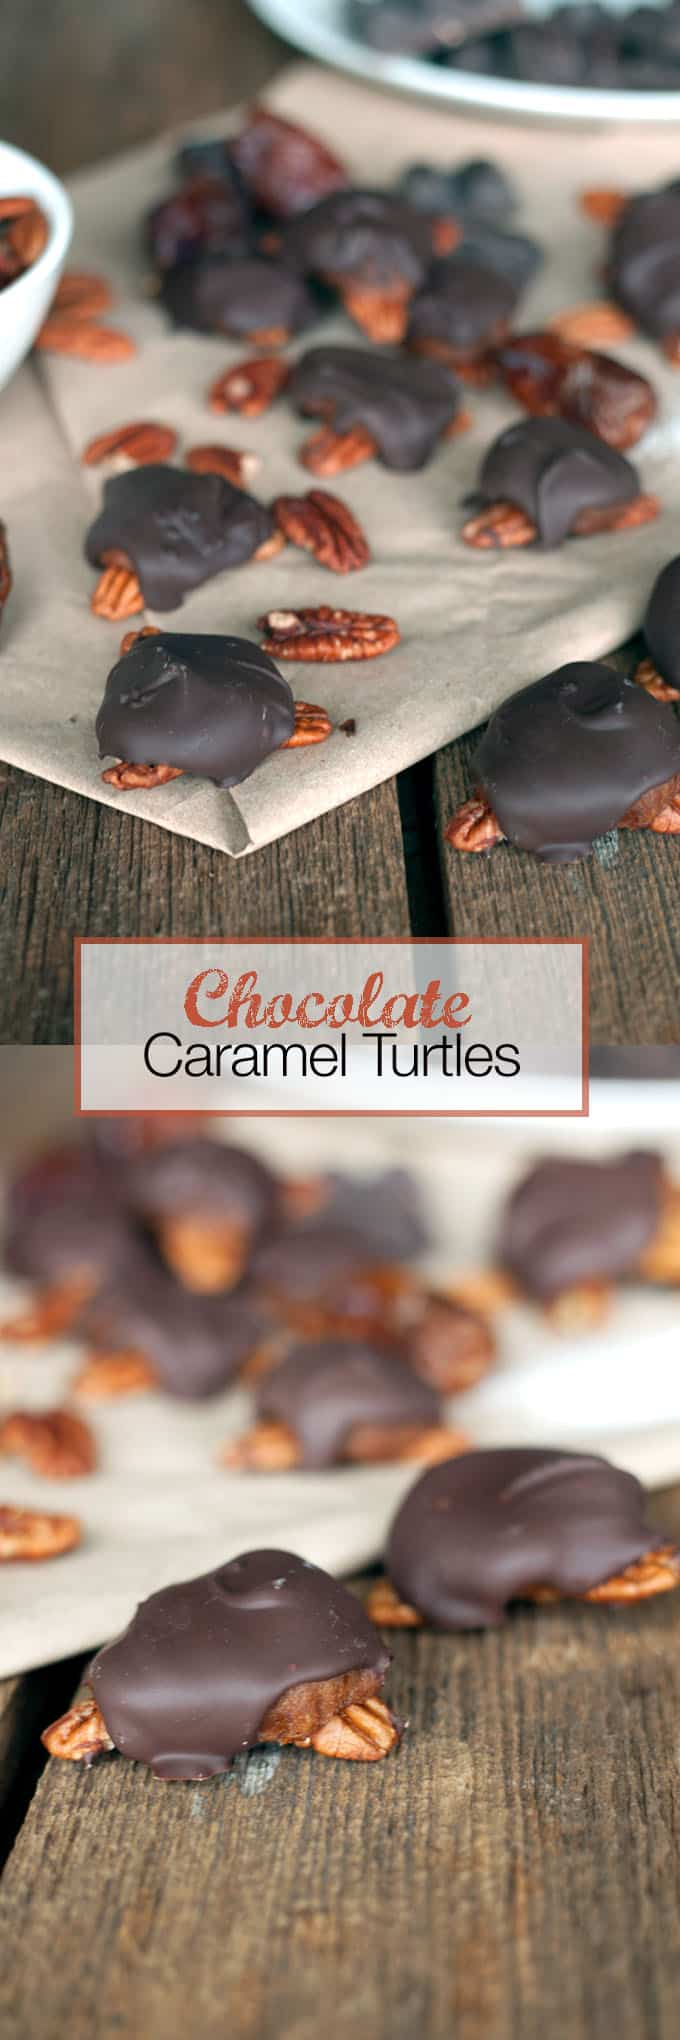 turtles chocolate recipe